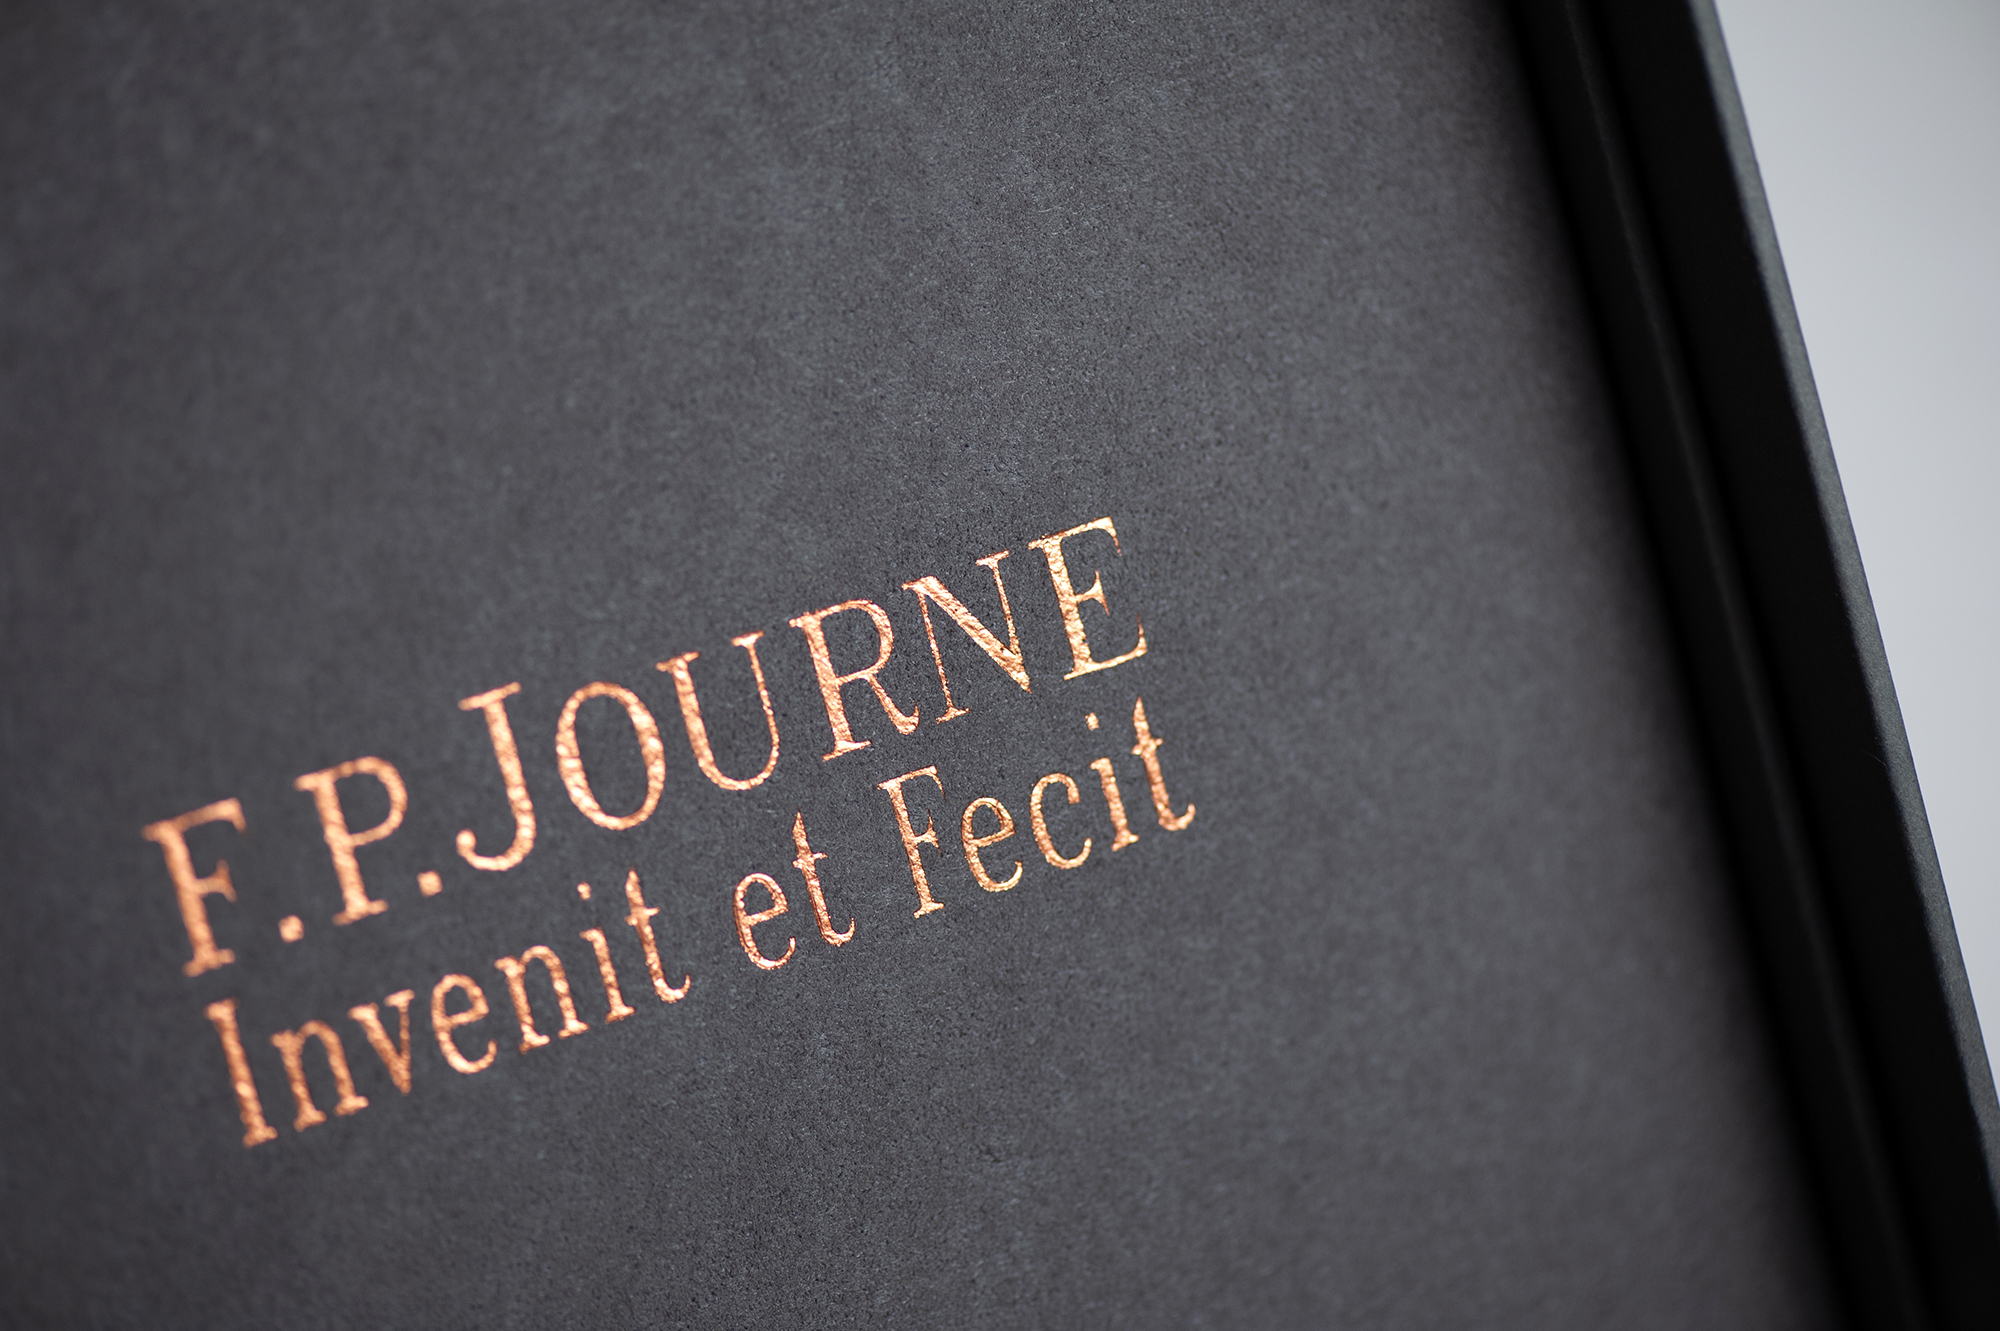 FP-Journe-box002